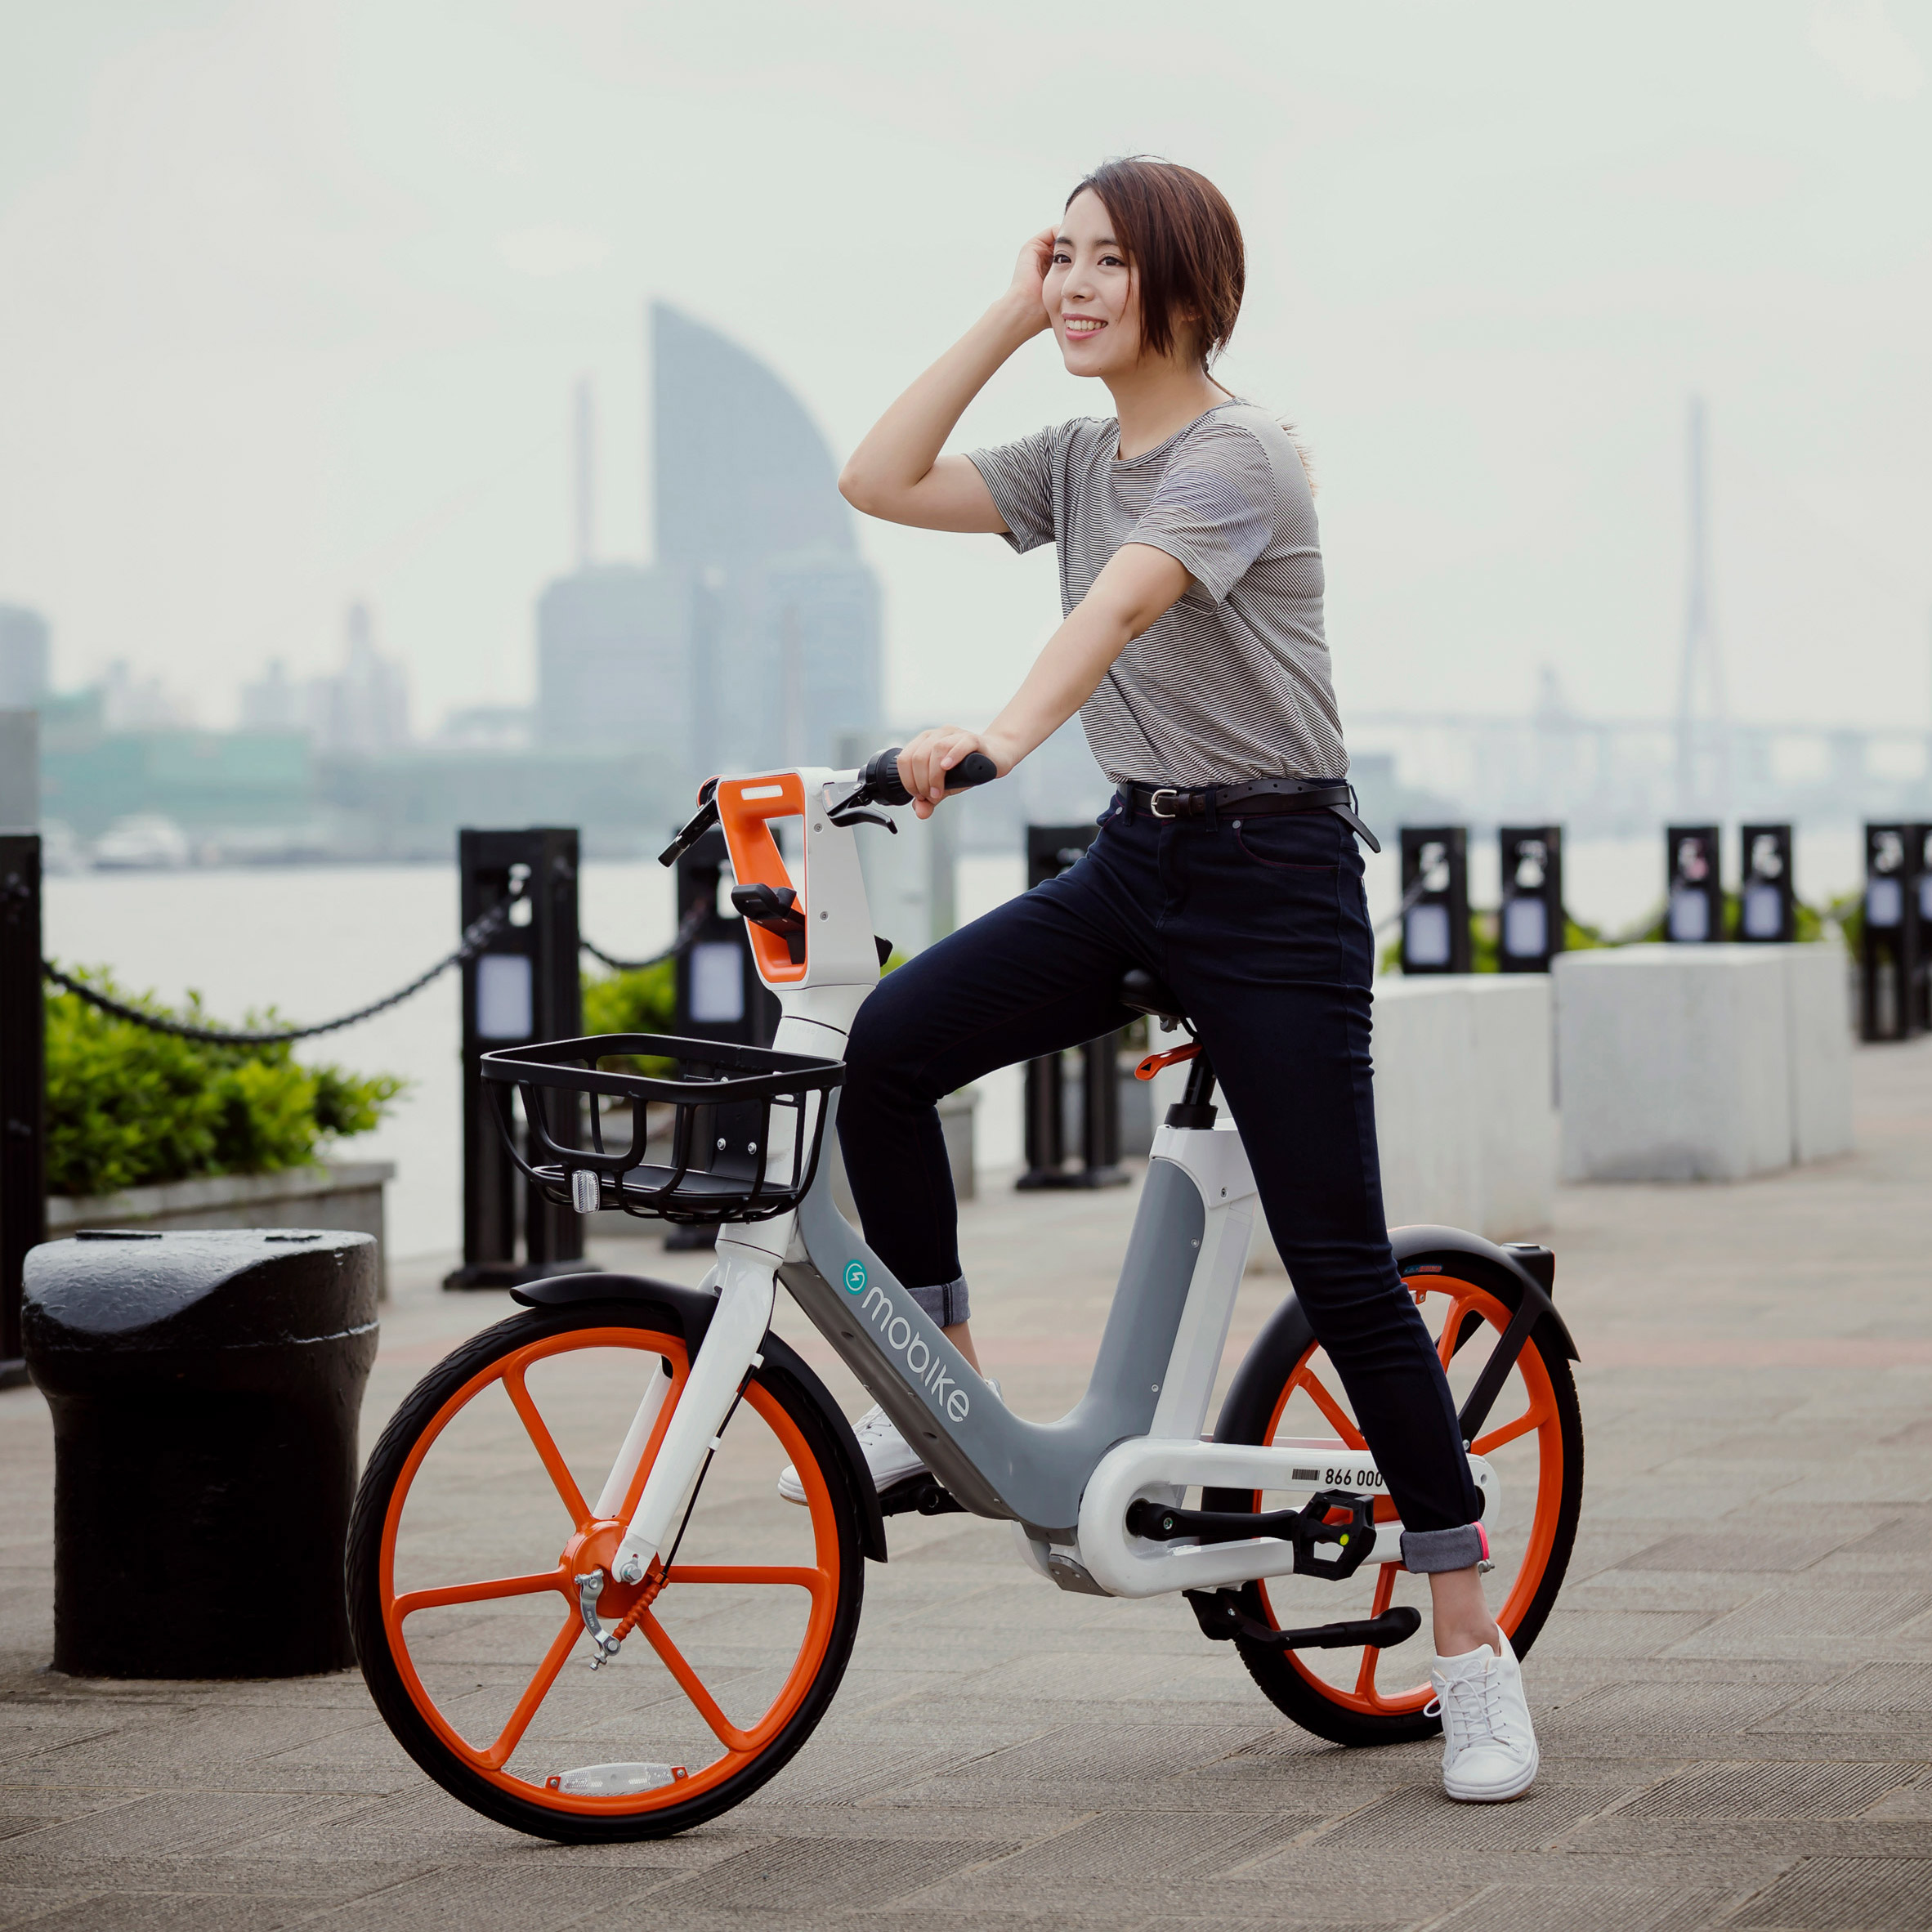 ecd09a1fb74 Mobike launches electric bike for dockless sharing